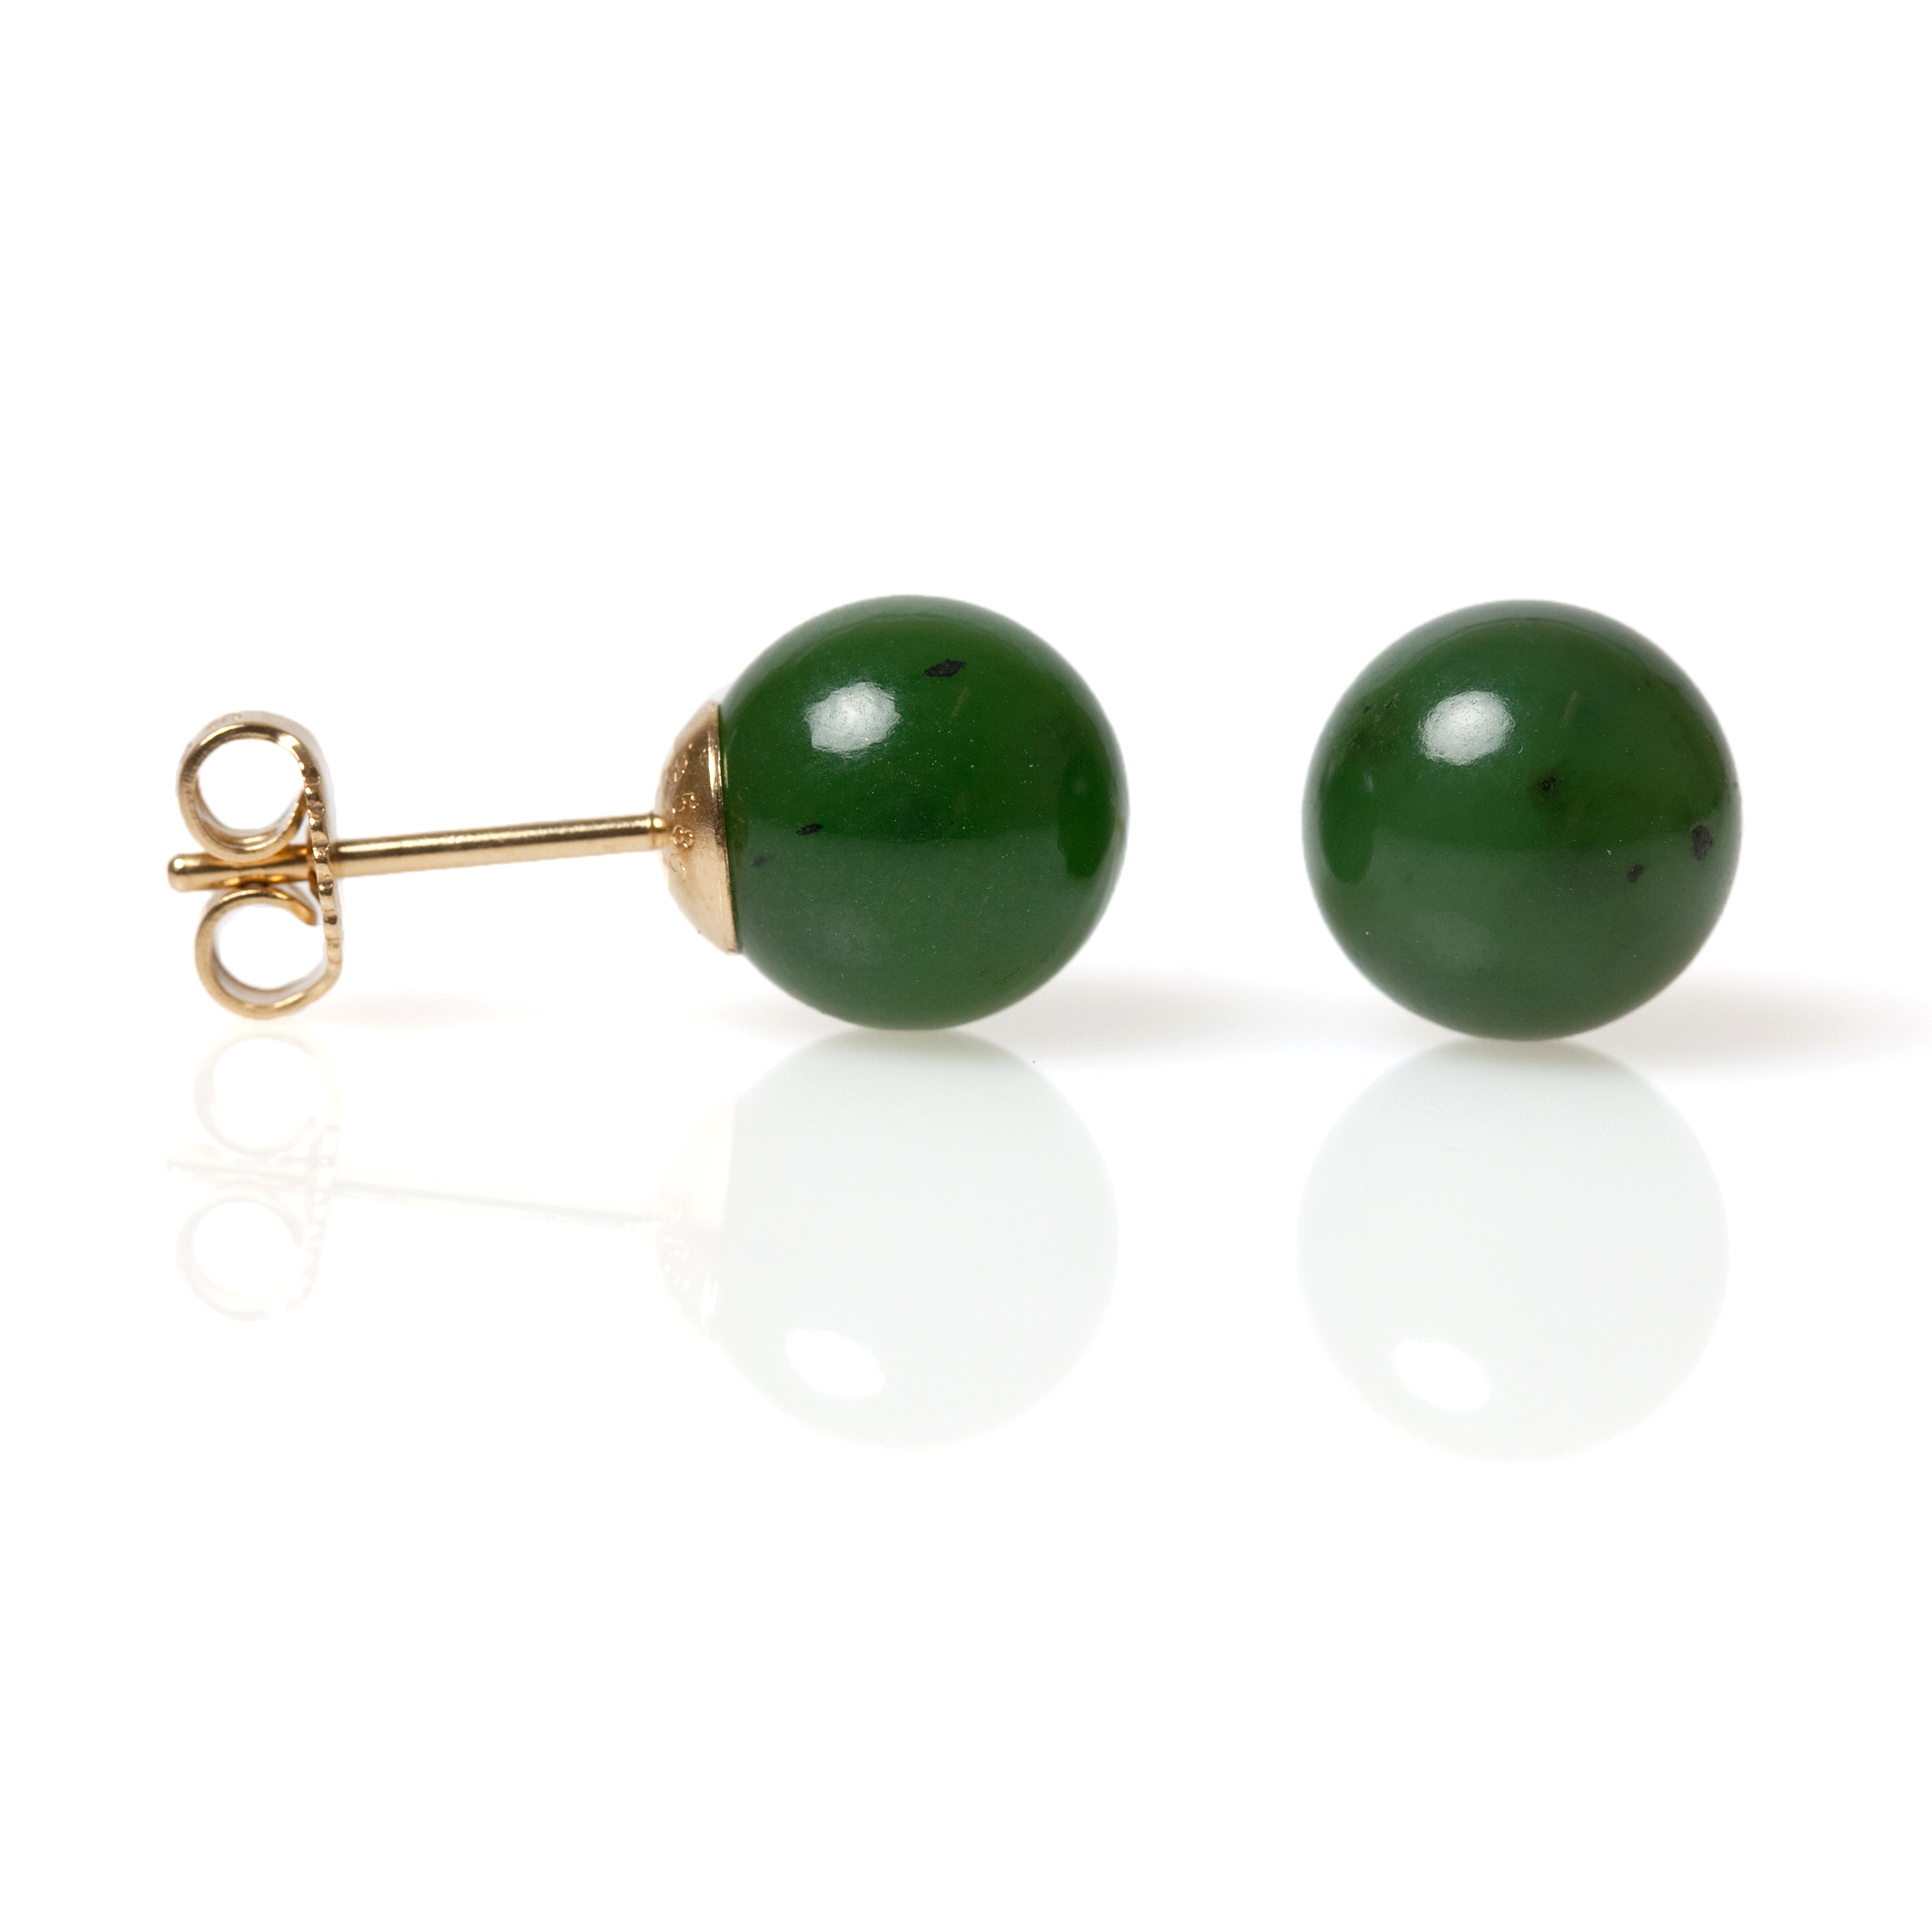 Gump's Green Nephrite Jade Bead Earrings